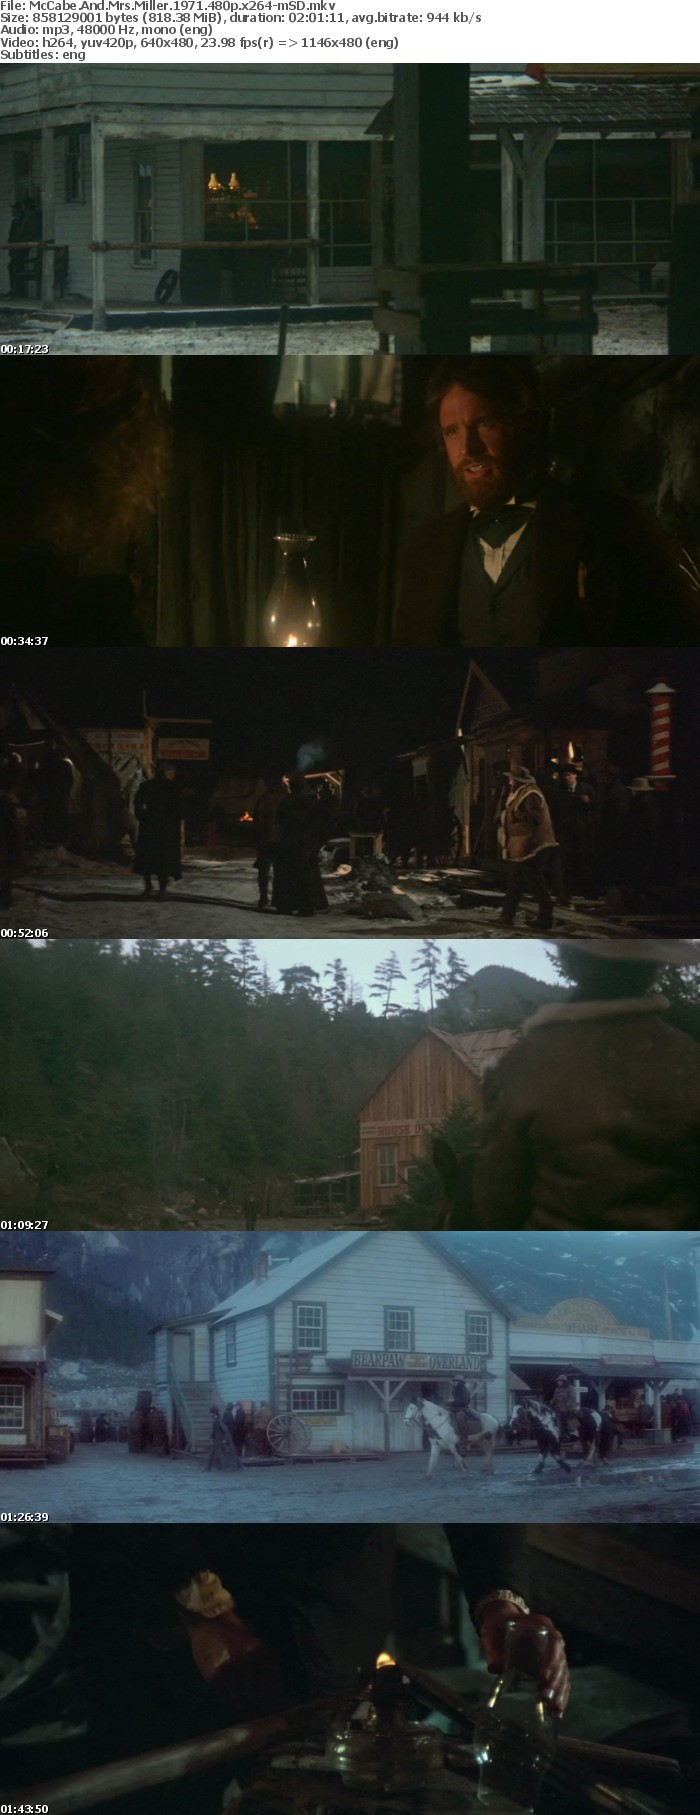 McCabe And Mrs Miller 1971 480p x264-mSD